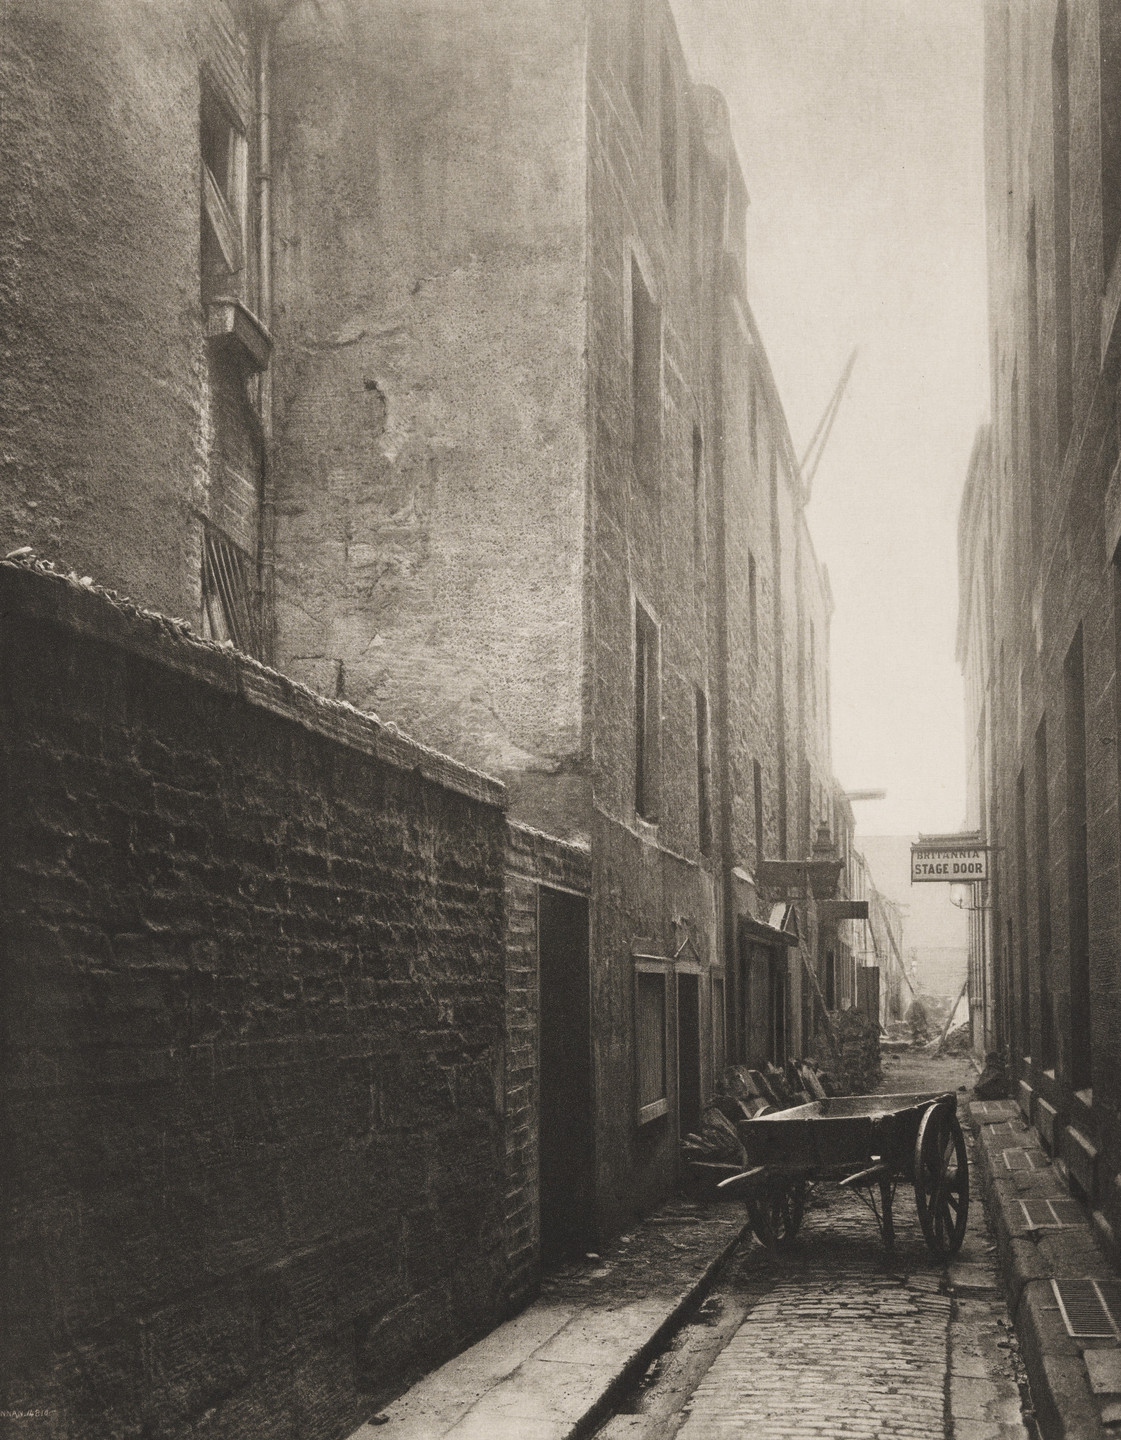 Thomas Annan. Back Wynd from Trongate. 1899